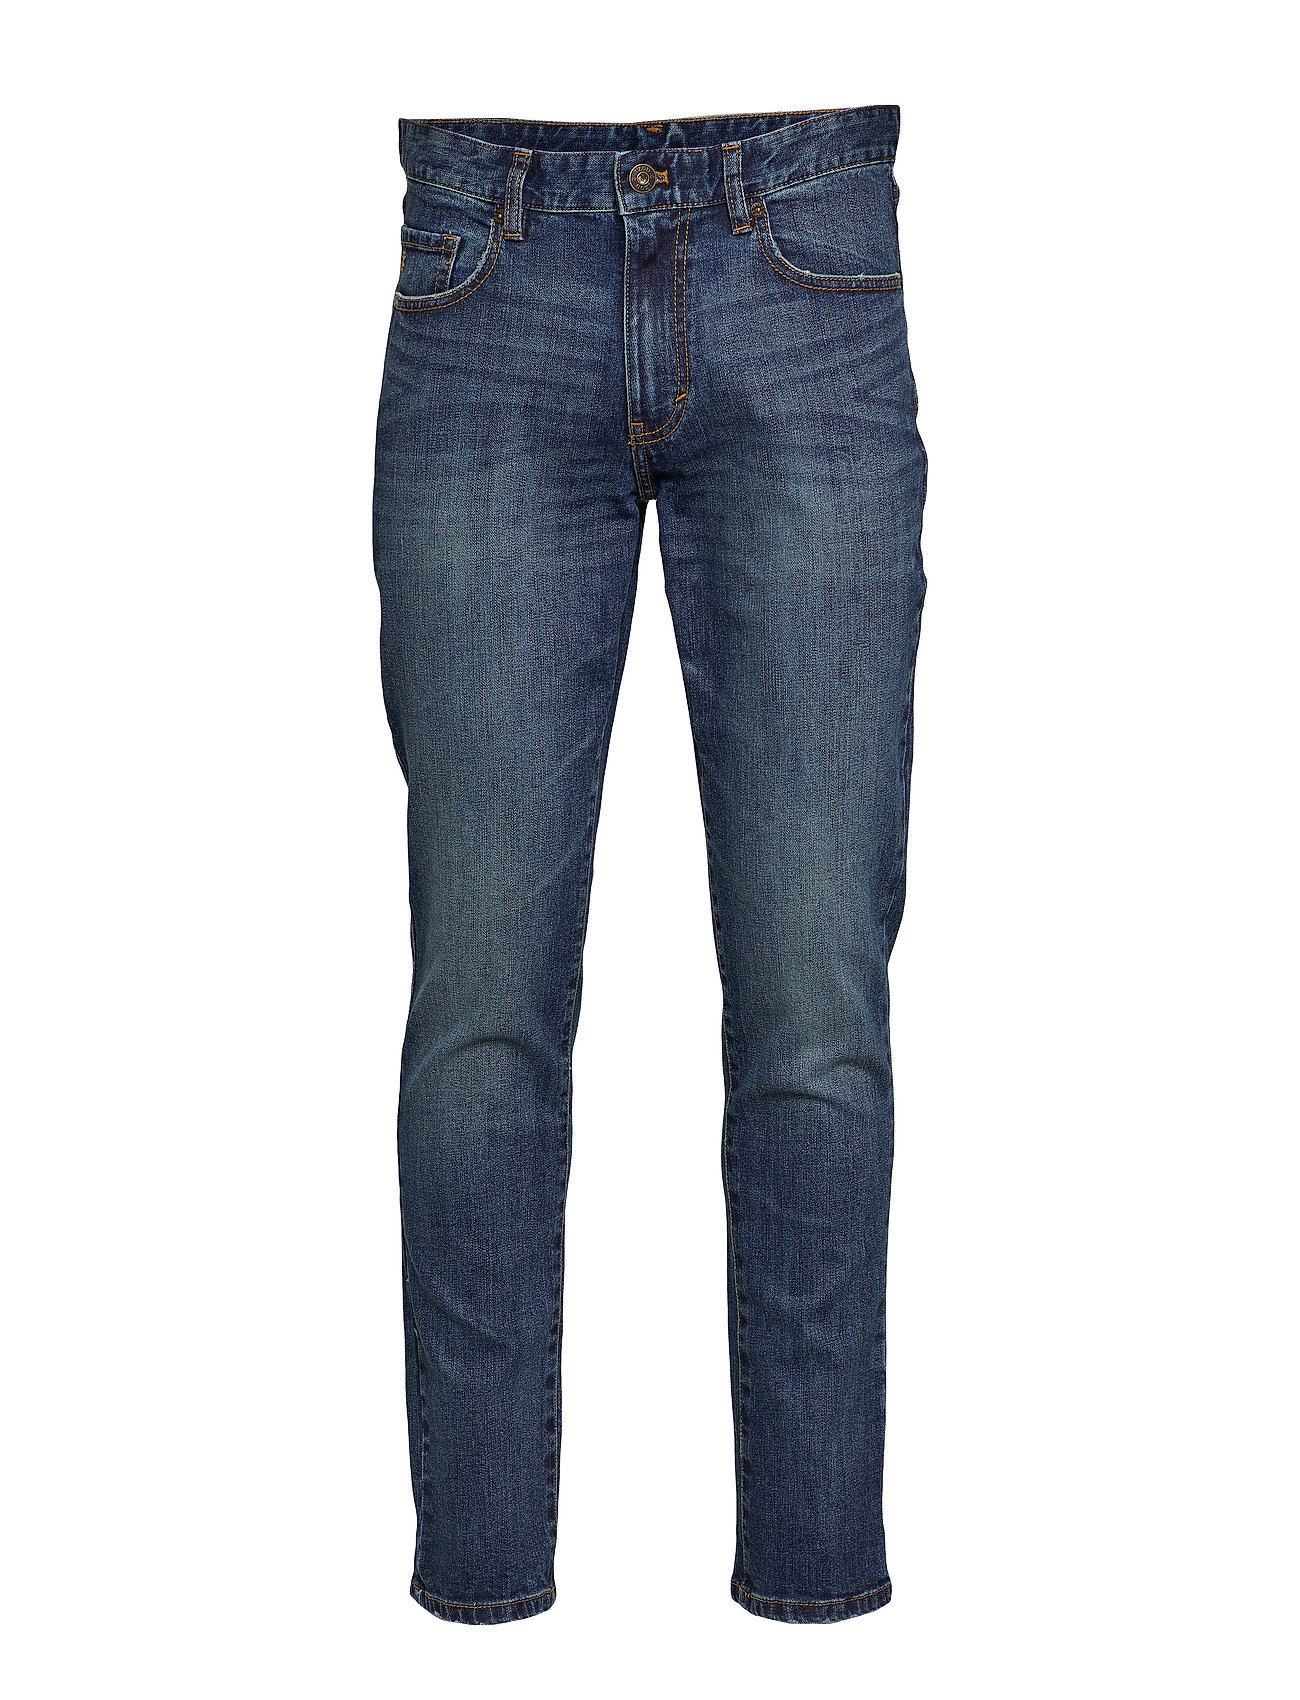 IZOD SALTWATER DENIM MEDIUM WASH - INDIGO SKY